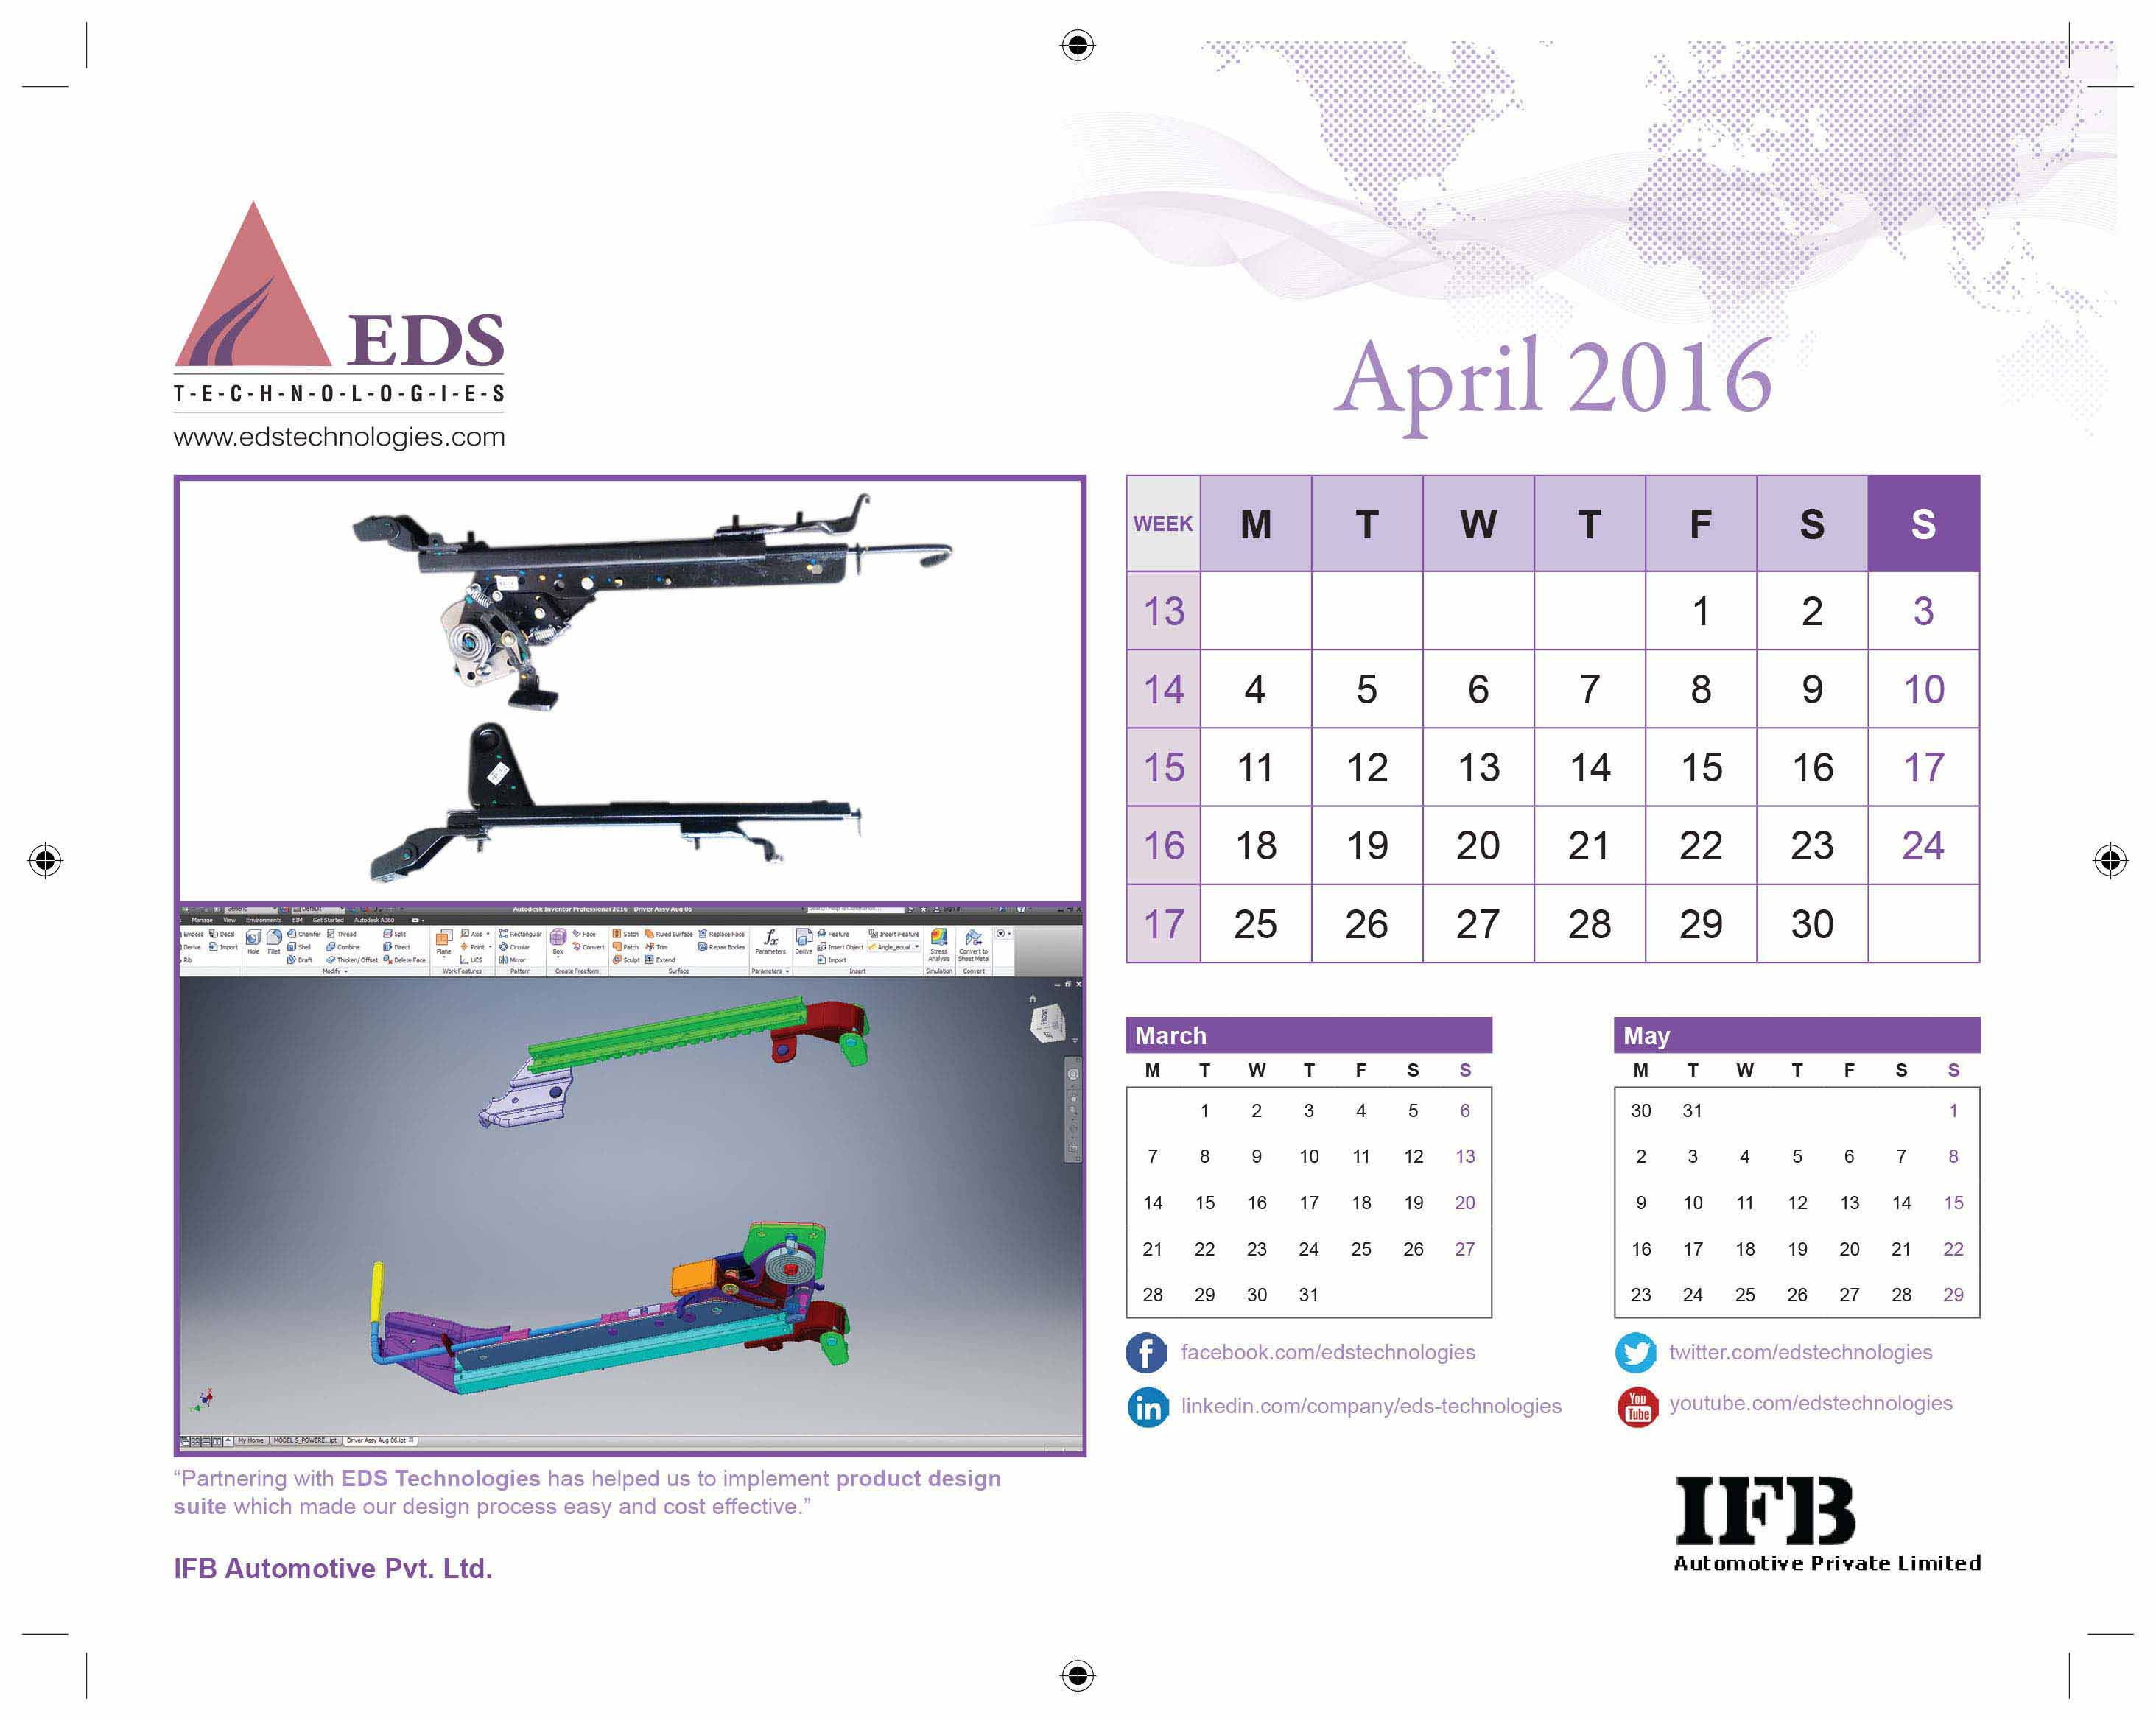 news-march2016